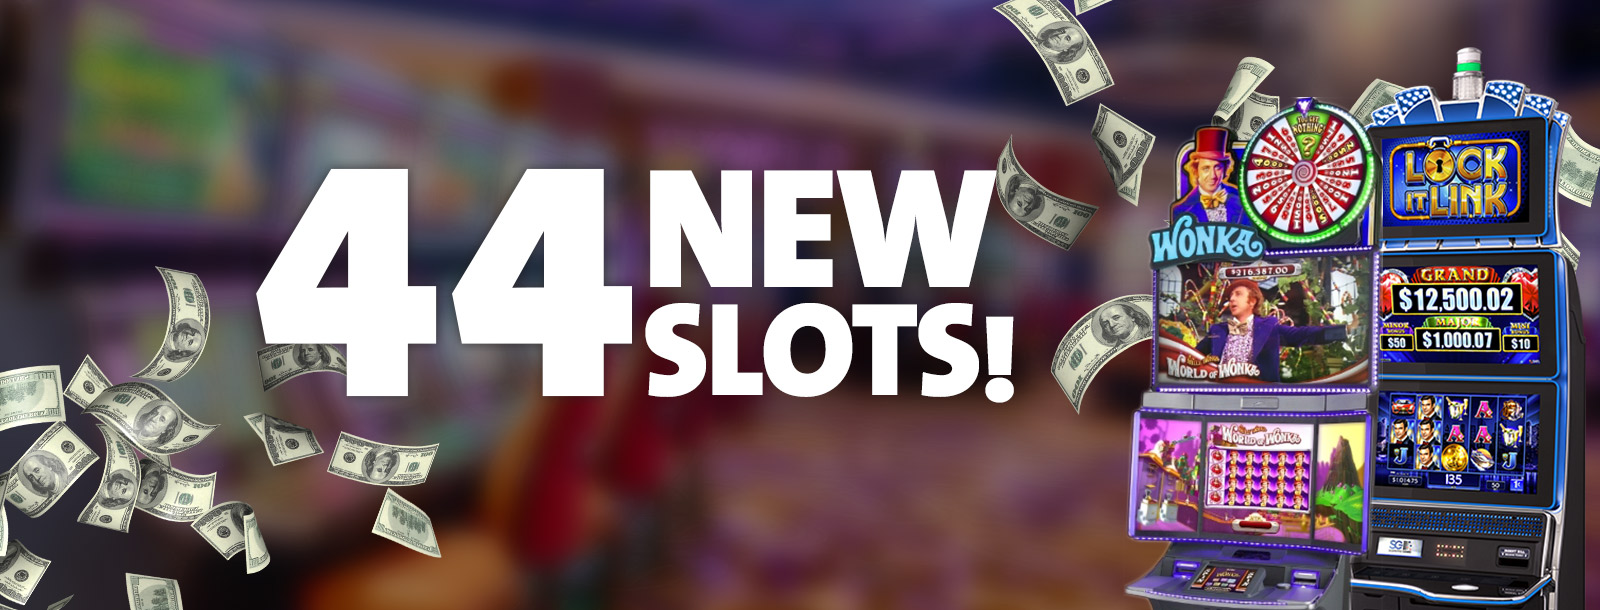 44 new slot - sioux city casino